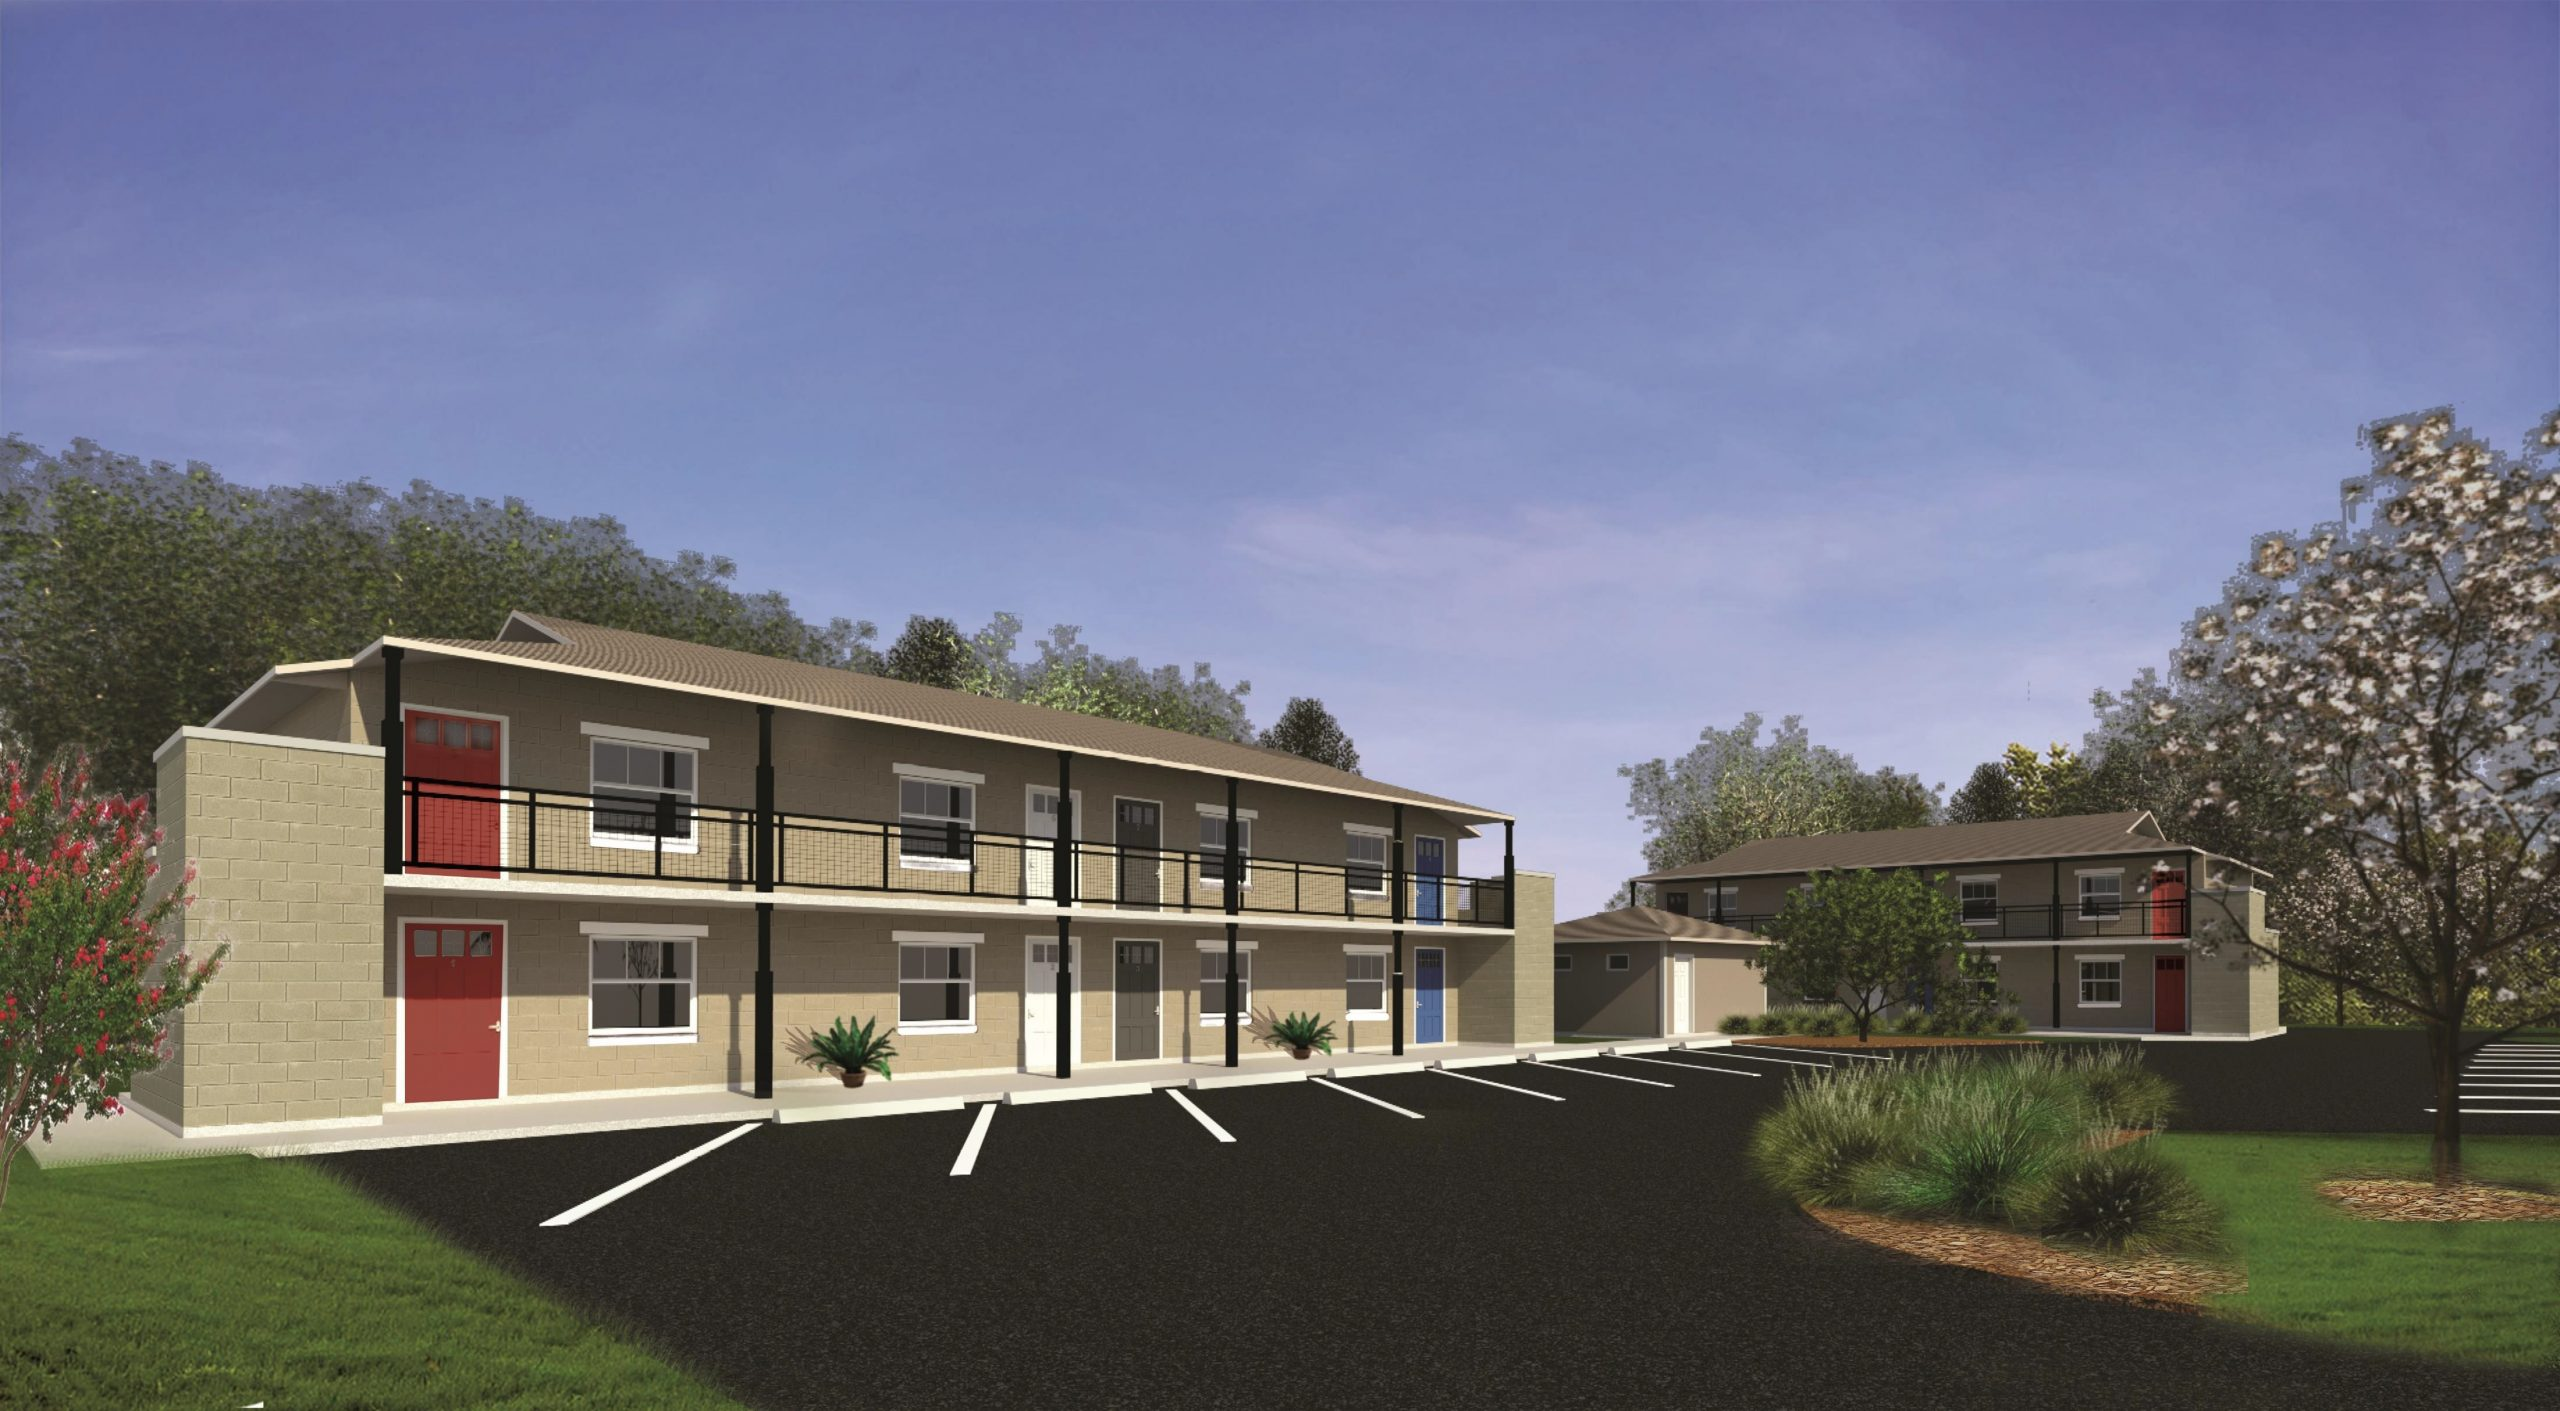 Vermont Place Apartments Groundbreaking Ceremony July 14